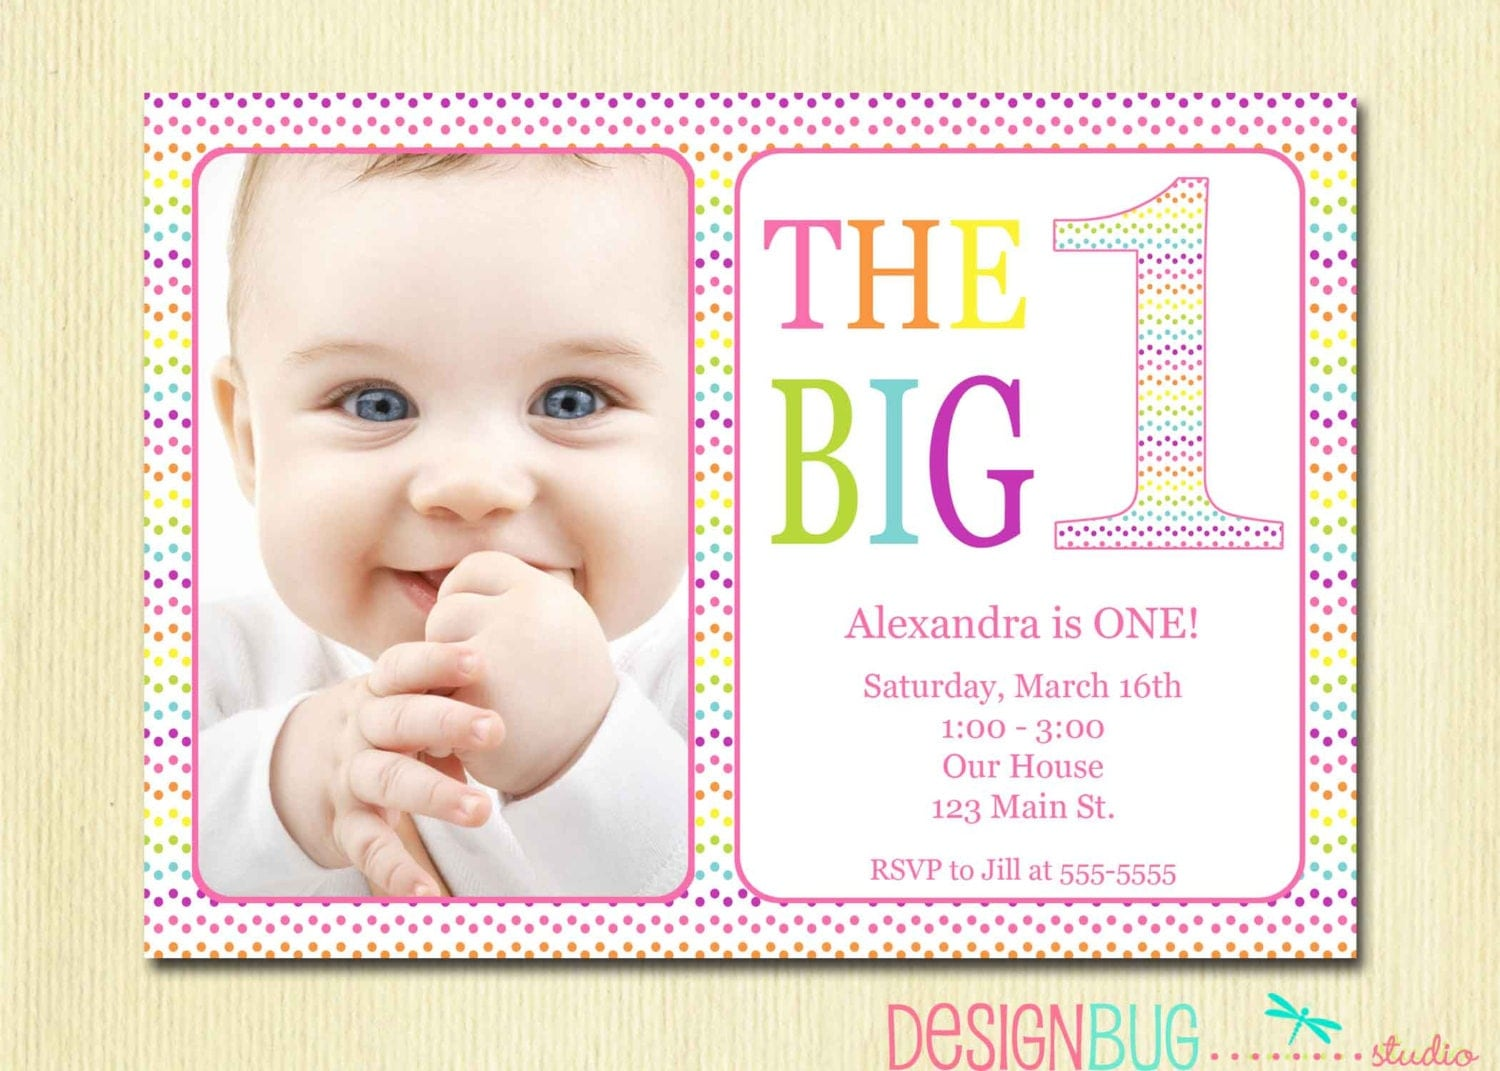 Rainbow First Birthday Invitation Baby Girl DIY Photo - Birthday invitation wording for 1 year old baby girl